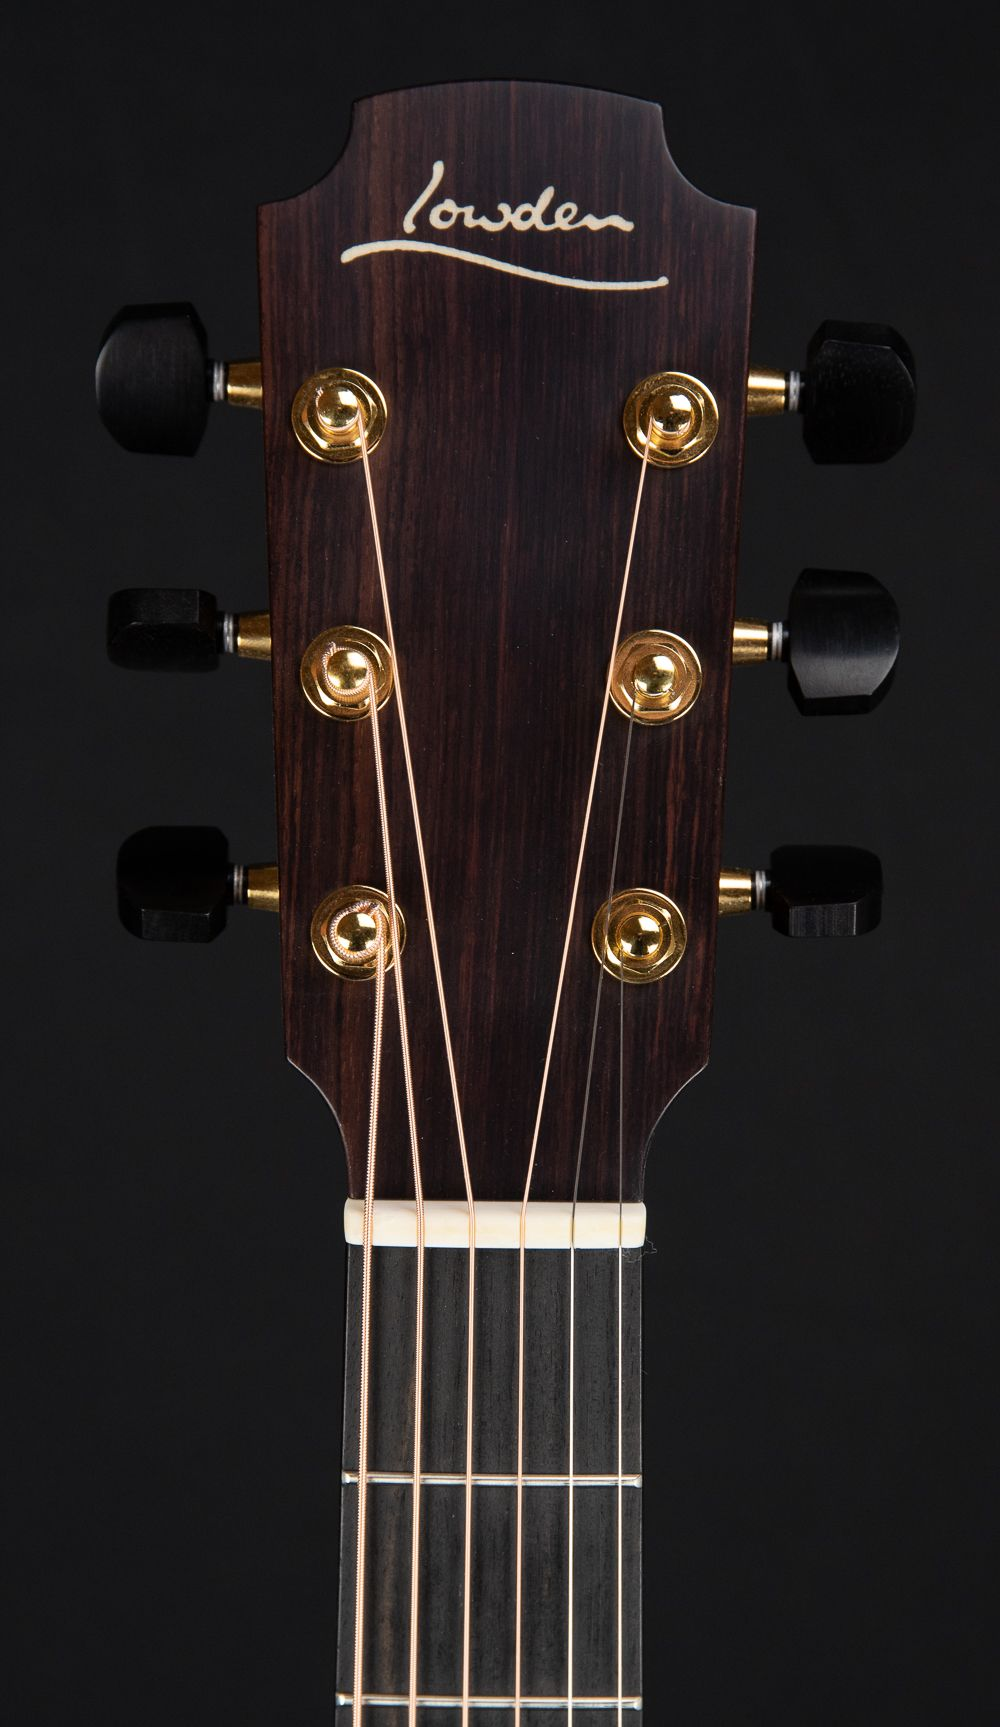 Lowden 32se Stage Guitar Rosewood Spruce